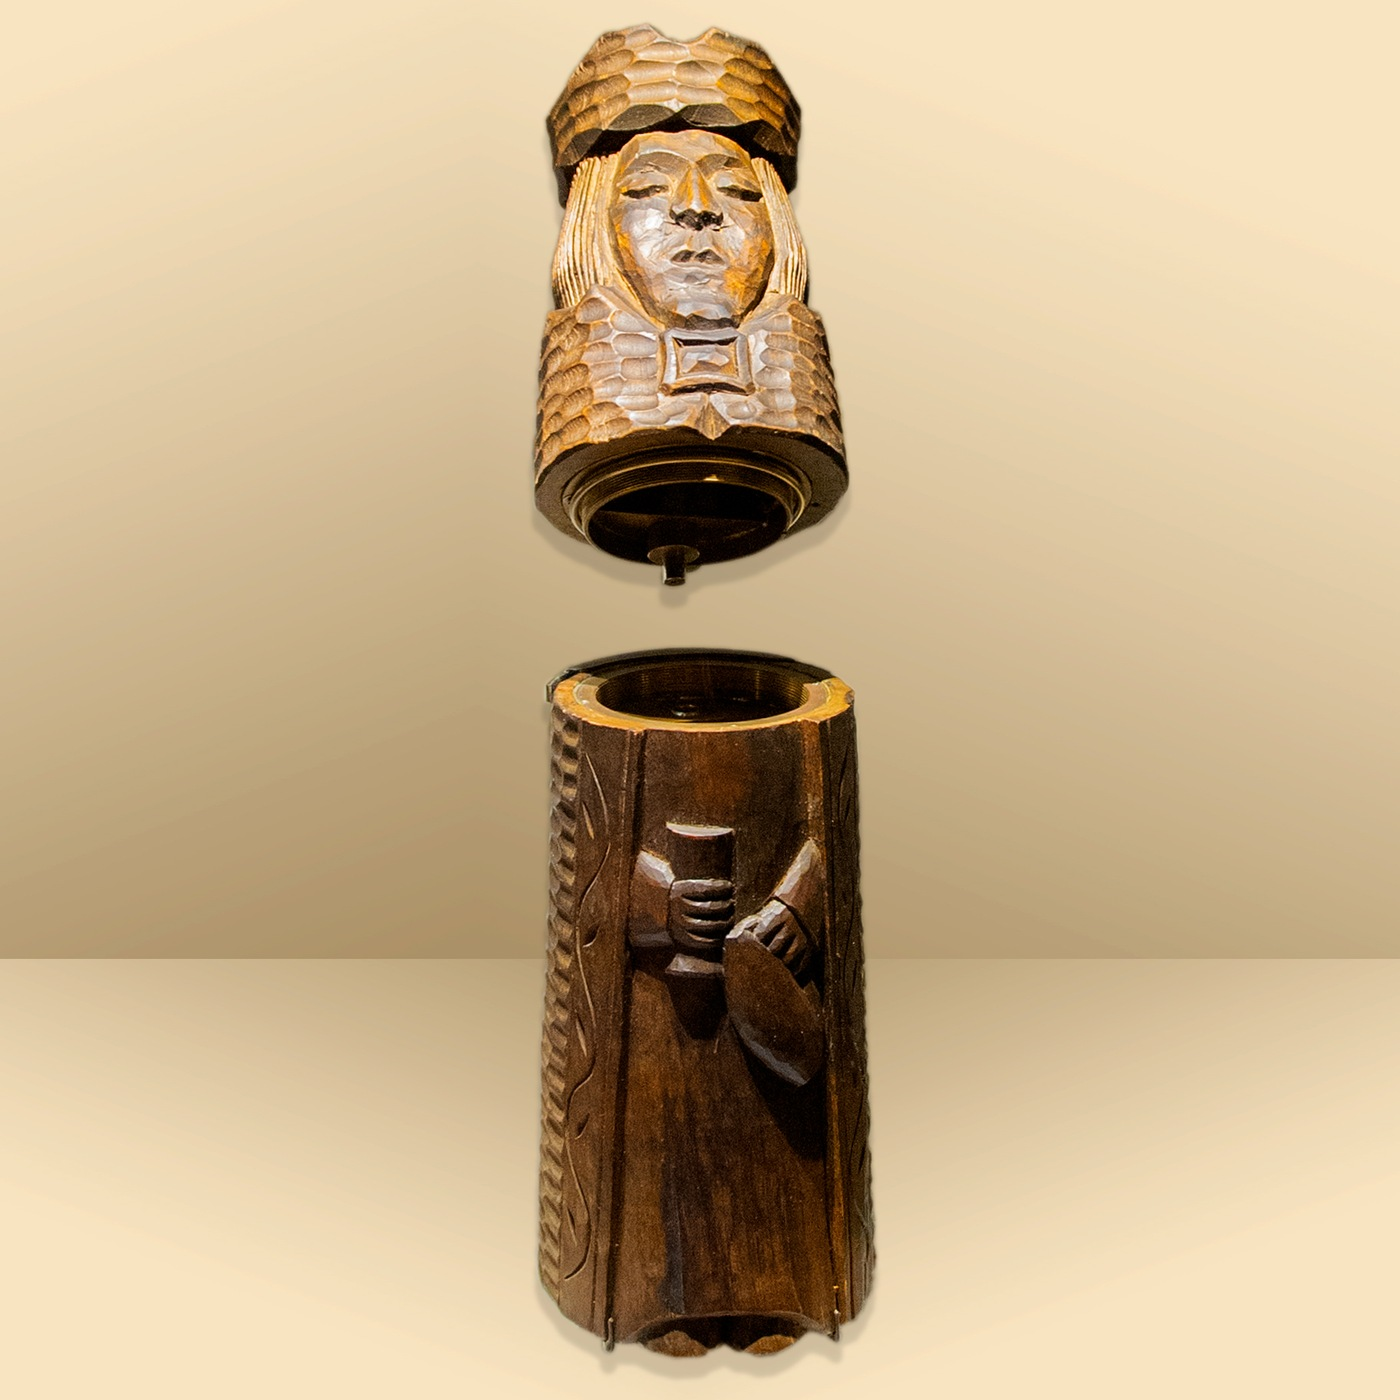 Photo of a concealment device designed to look like a wooden chess piece.